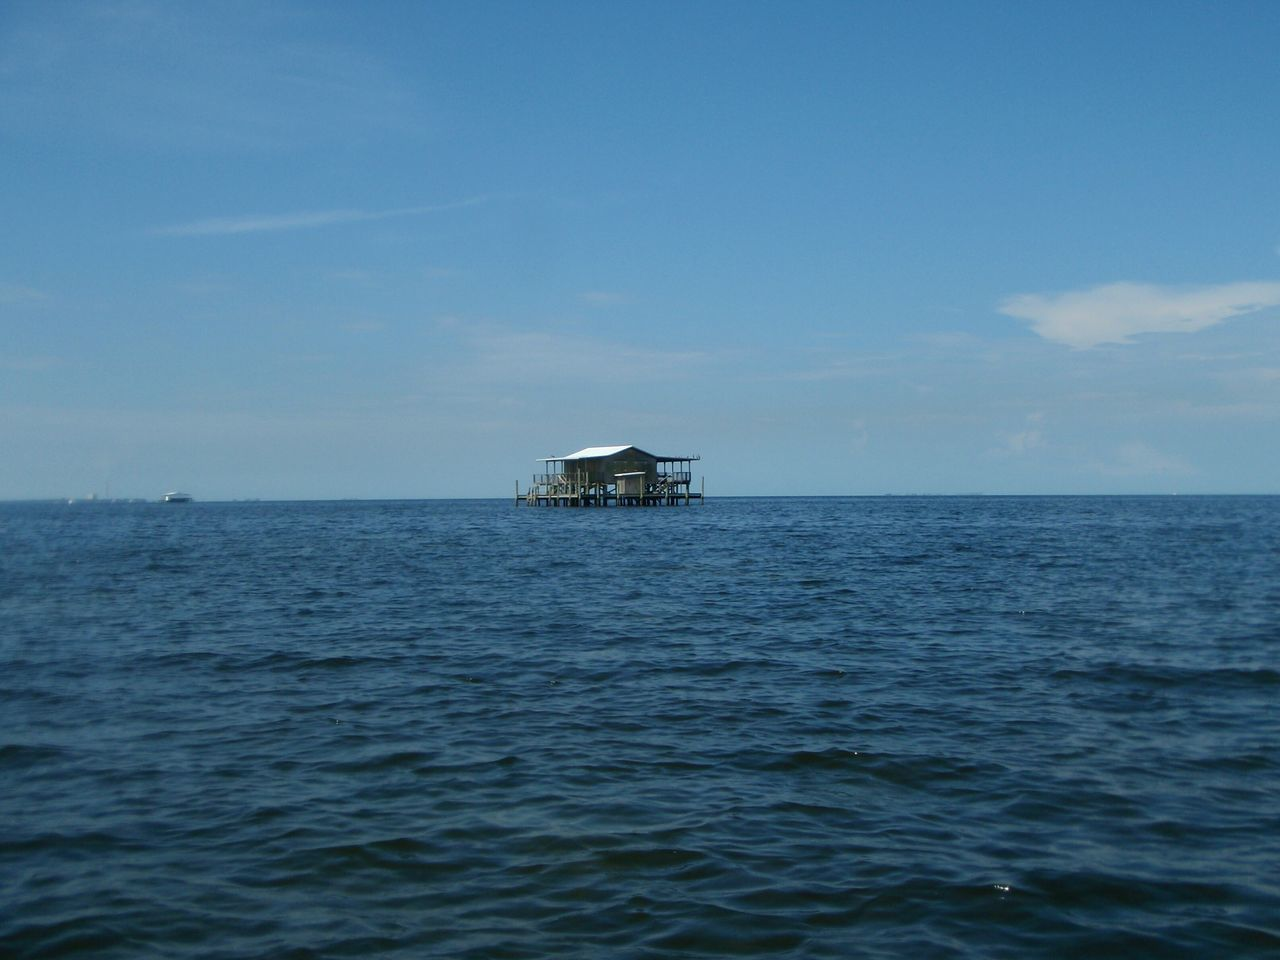 Stilt house on the Gulf of Mexico Sea Blue Water Horizon Over Water Outdoors Tranquility No People Day Stilt House Stilt Houses Gulf Of Mexico Tampa Bay Solitude Away From It All